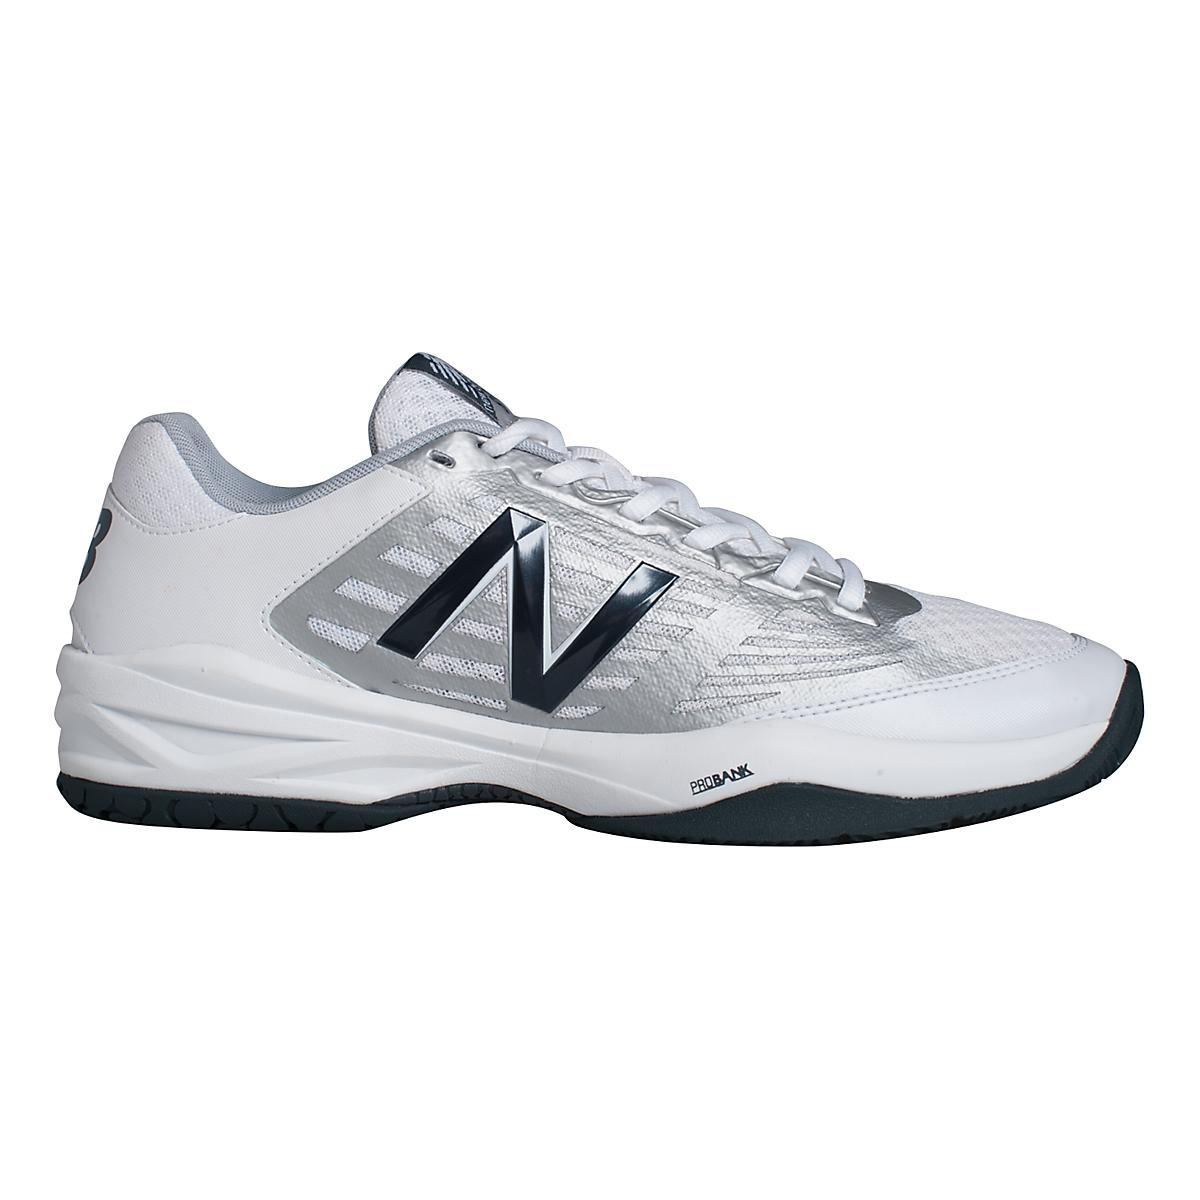 huge discount 3591a eb1be Mens New Balance 896 Court Shoe at Road Runner Sports